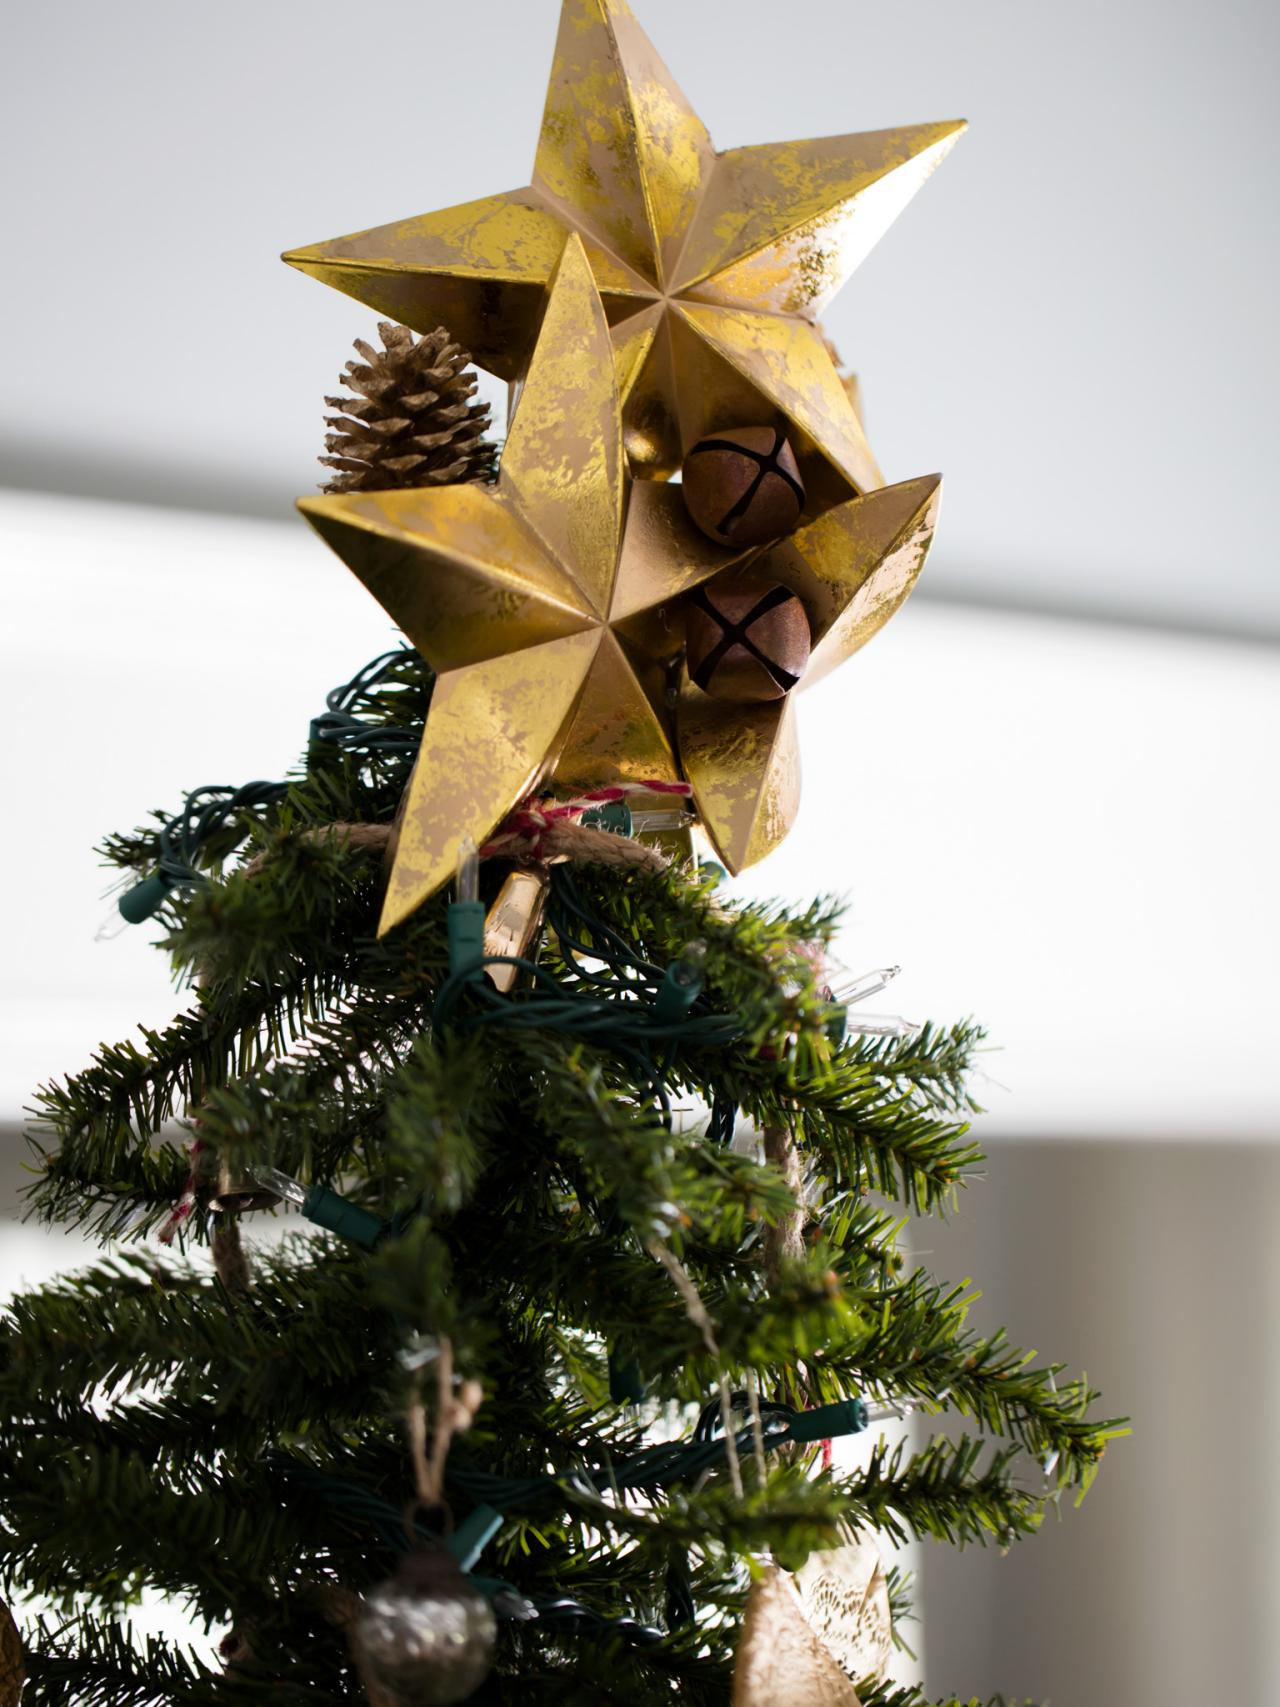 Cluster Stars on Top. Since Christmas tree ... & How to Decorate a Christmas Tree | HGTVu0027s Decorating u0026 Design Blog ...